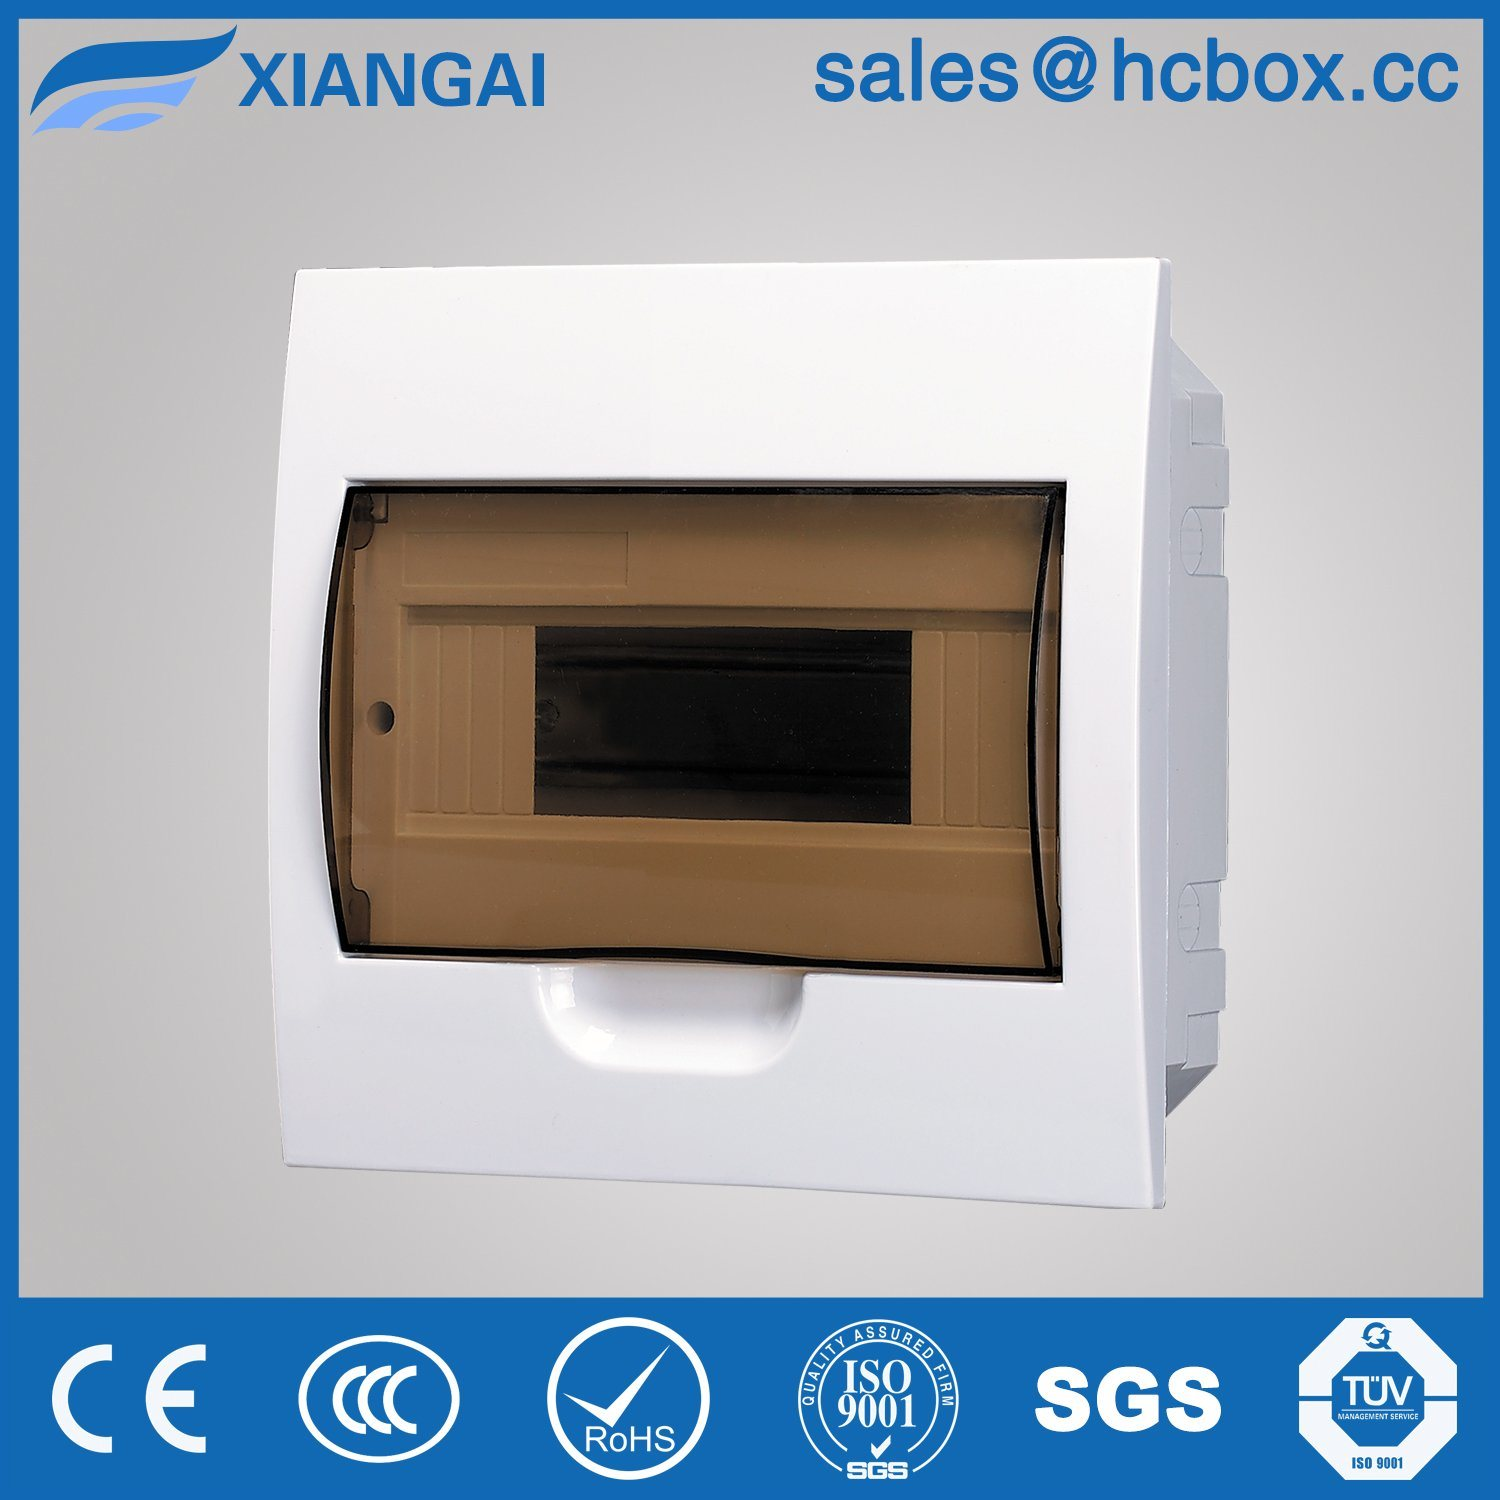 Tsm Distribution Box Best Price Best Service Chb-TF 8ways Hc-TF8ways